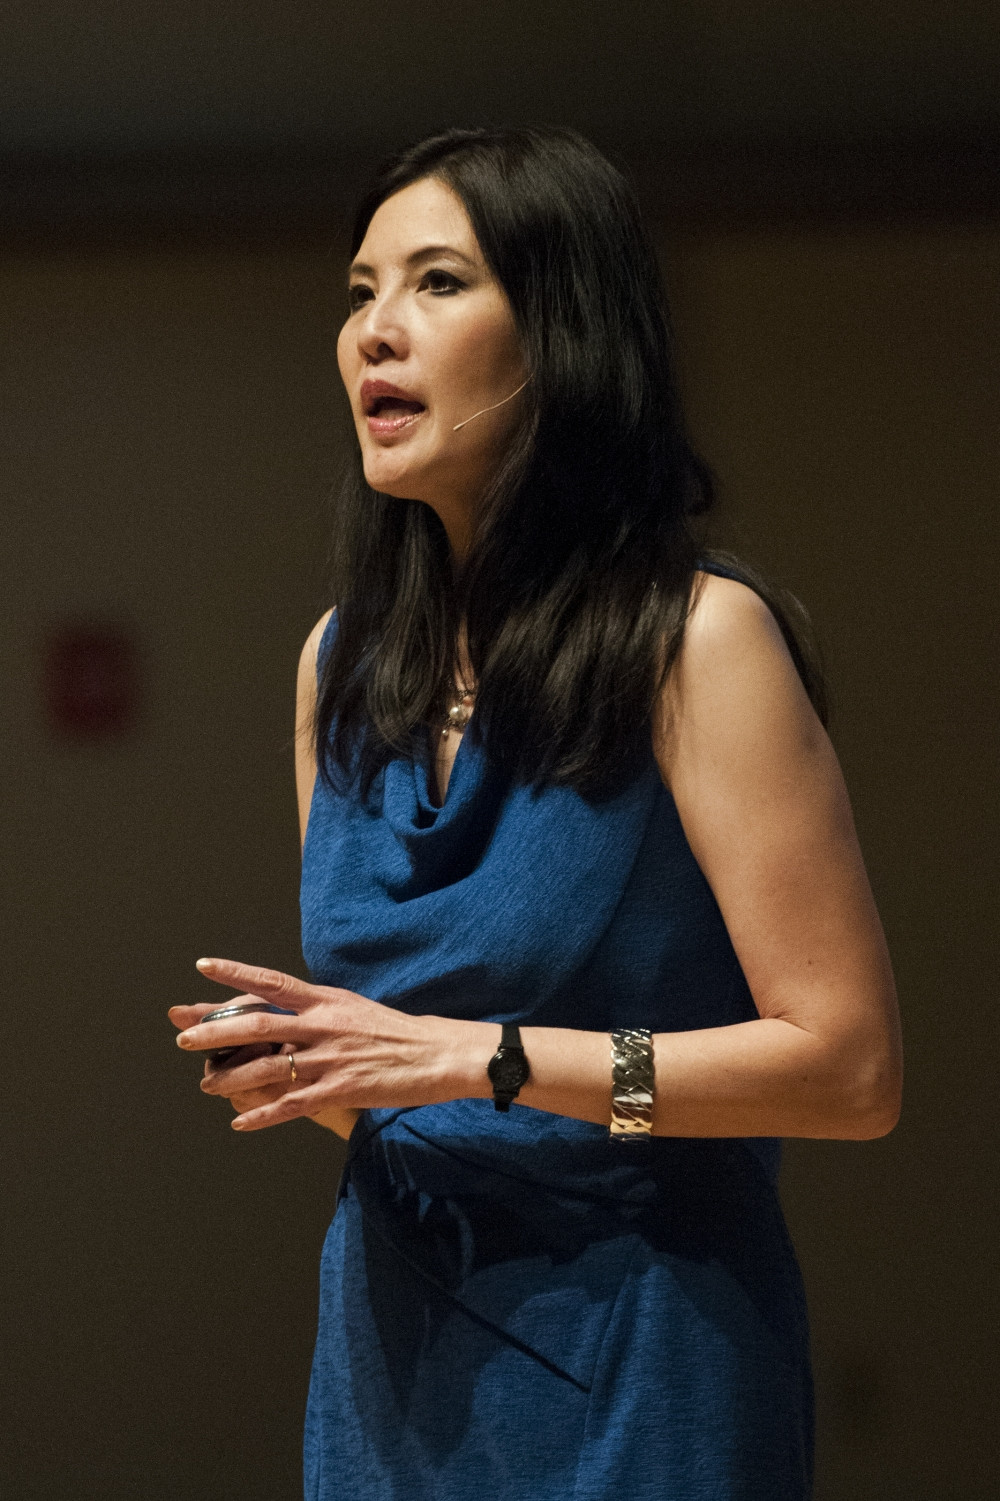 """Sheryl WuDunn encouraged volunteerism and community activism at her talk on Monday at Pruis Hall. WuDann is the author of """"Half the Sky"""" and """"A Path Appears"""" and won the Pulitzer Prize while working in Beijing for the New York Times. DN PHOTO JONATHAN MIKSANEK"""